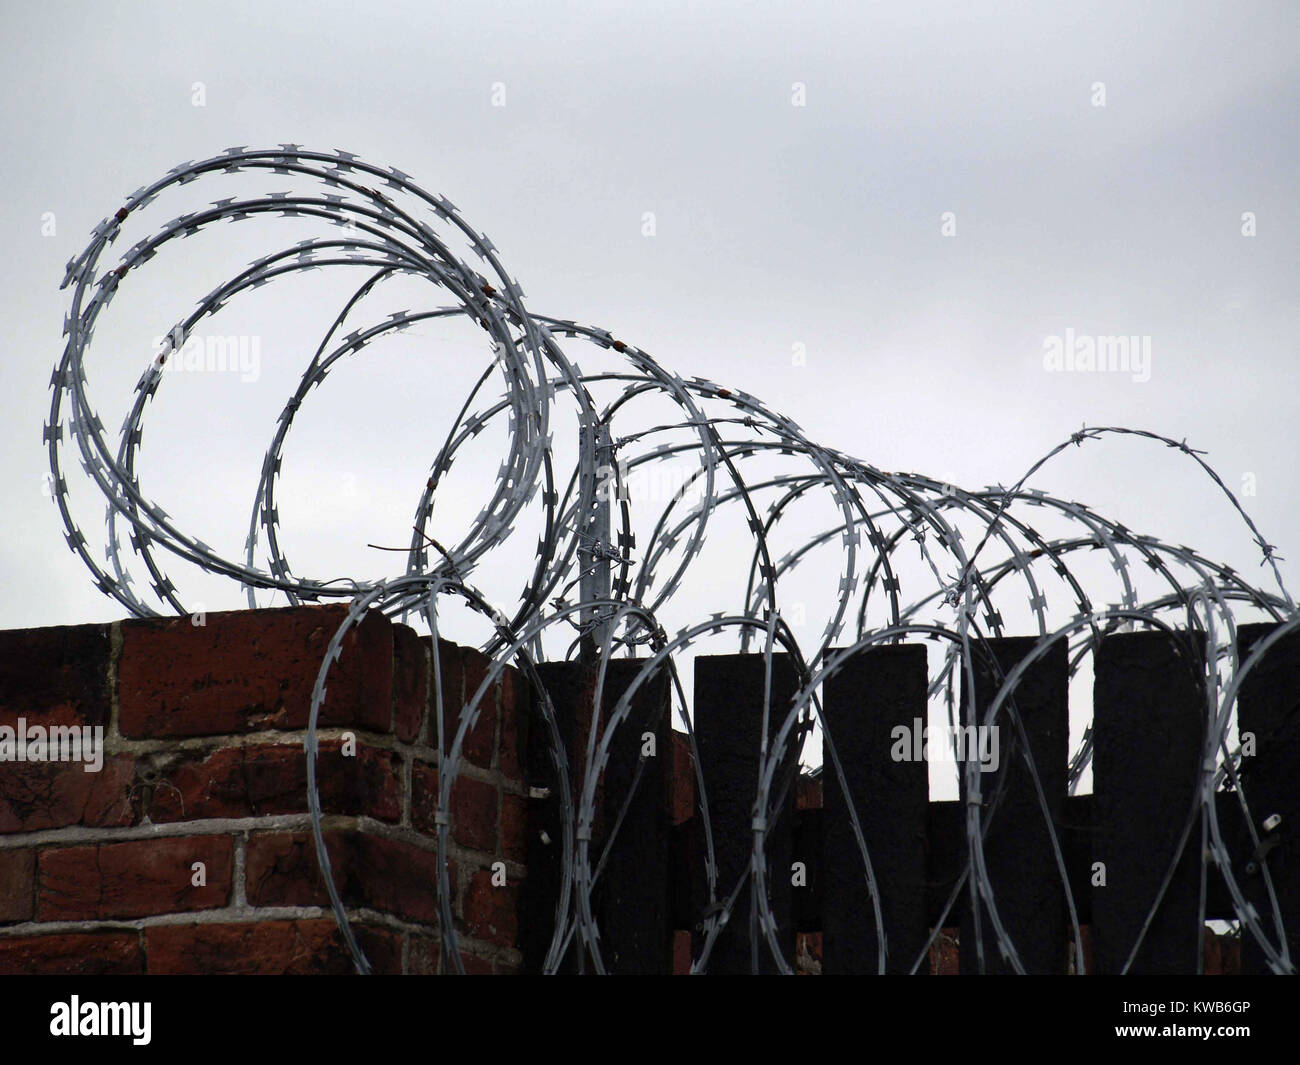 Coiled barbed wire on top of brick wall Stock Photo: 170506358 - Alamy